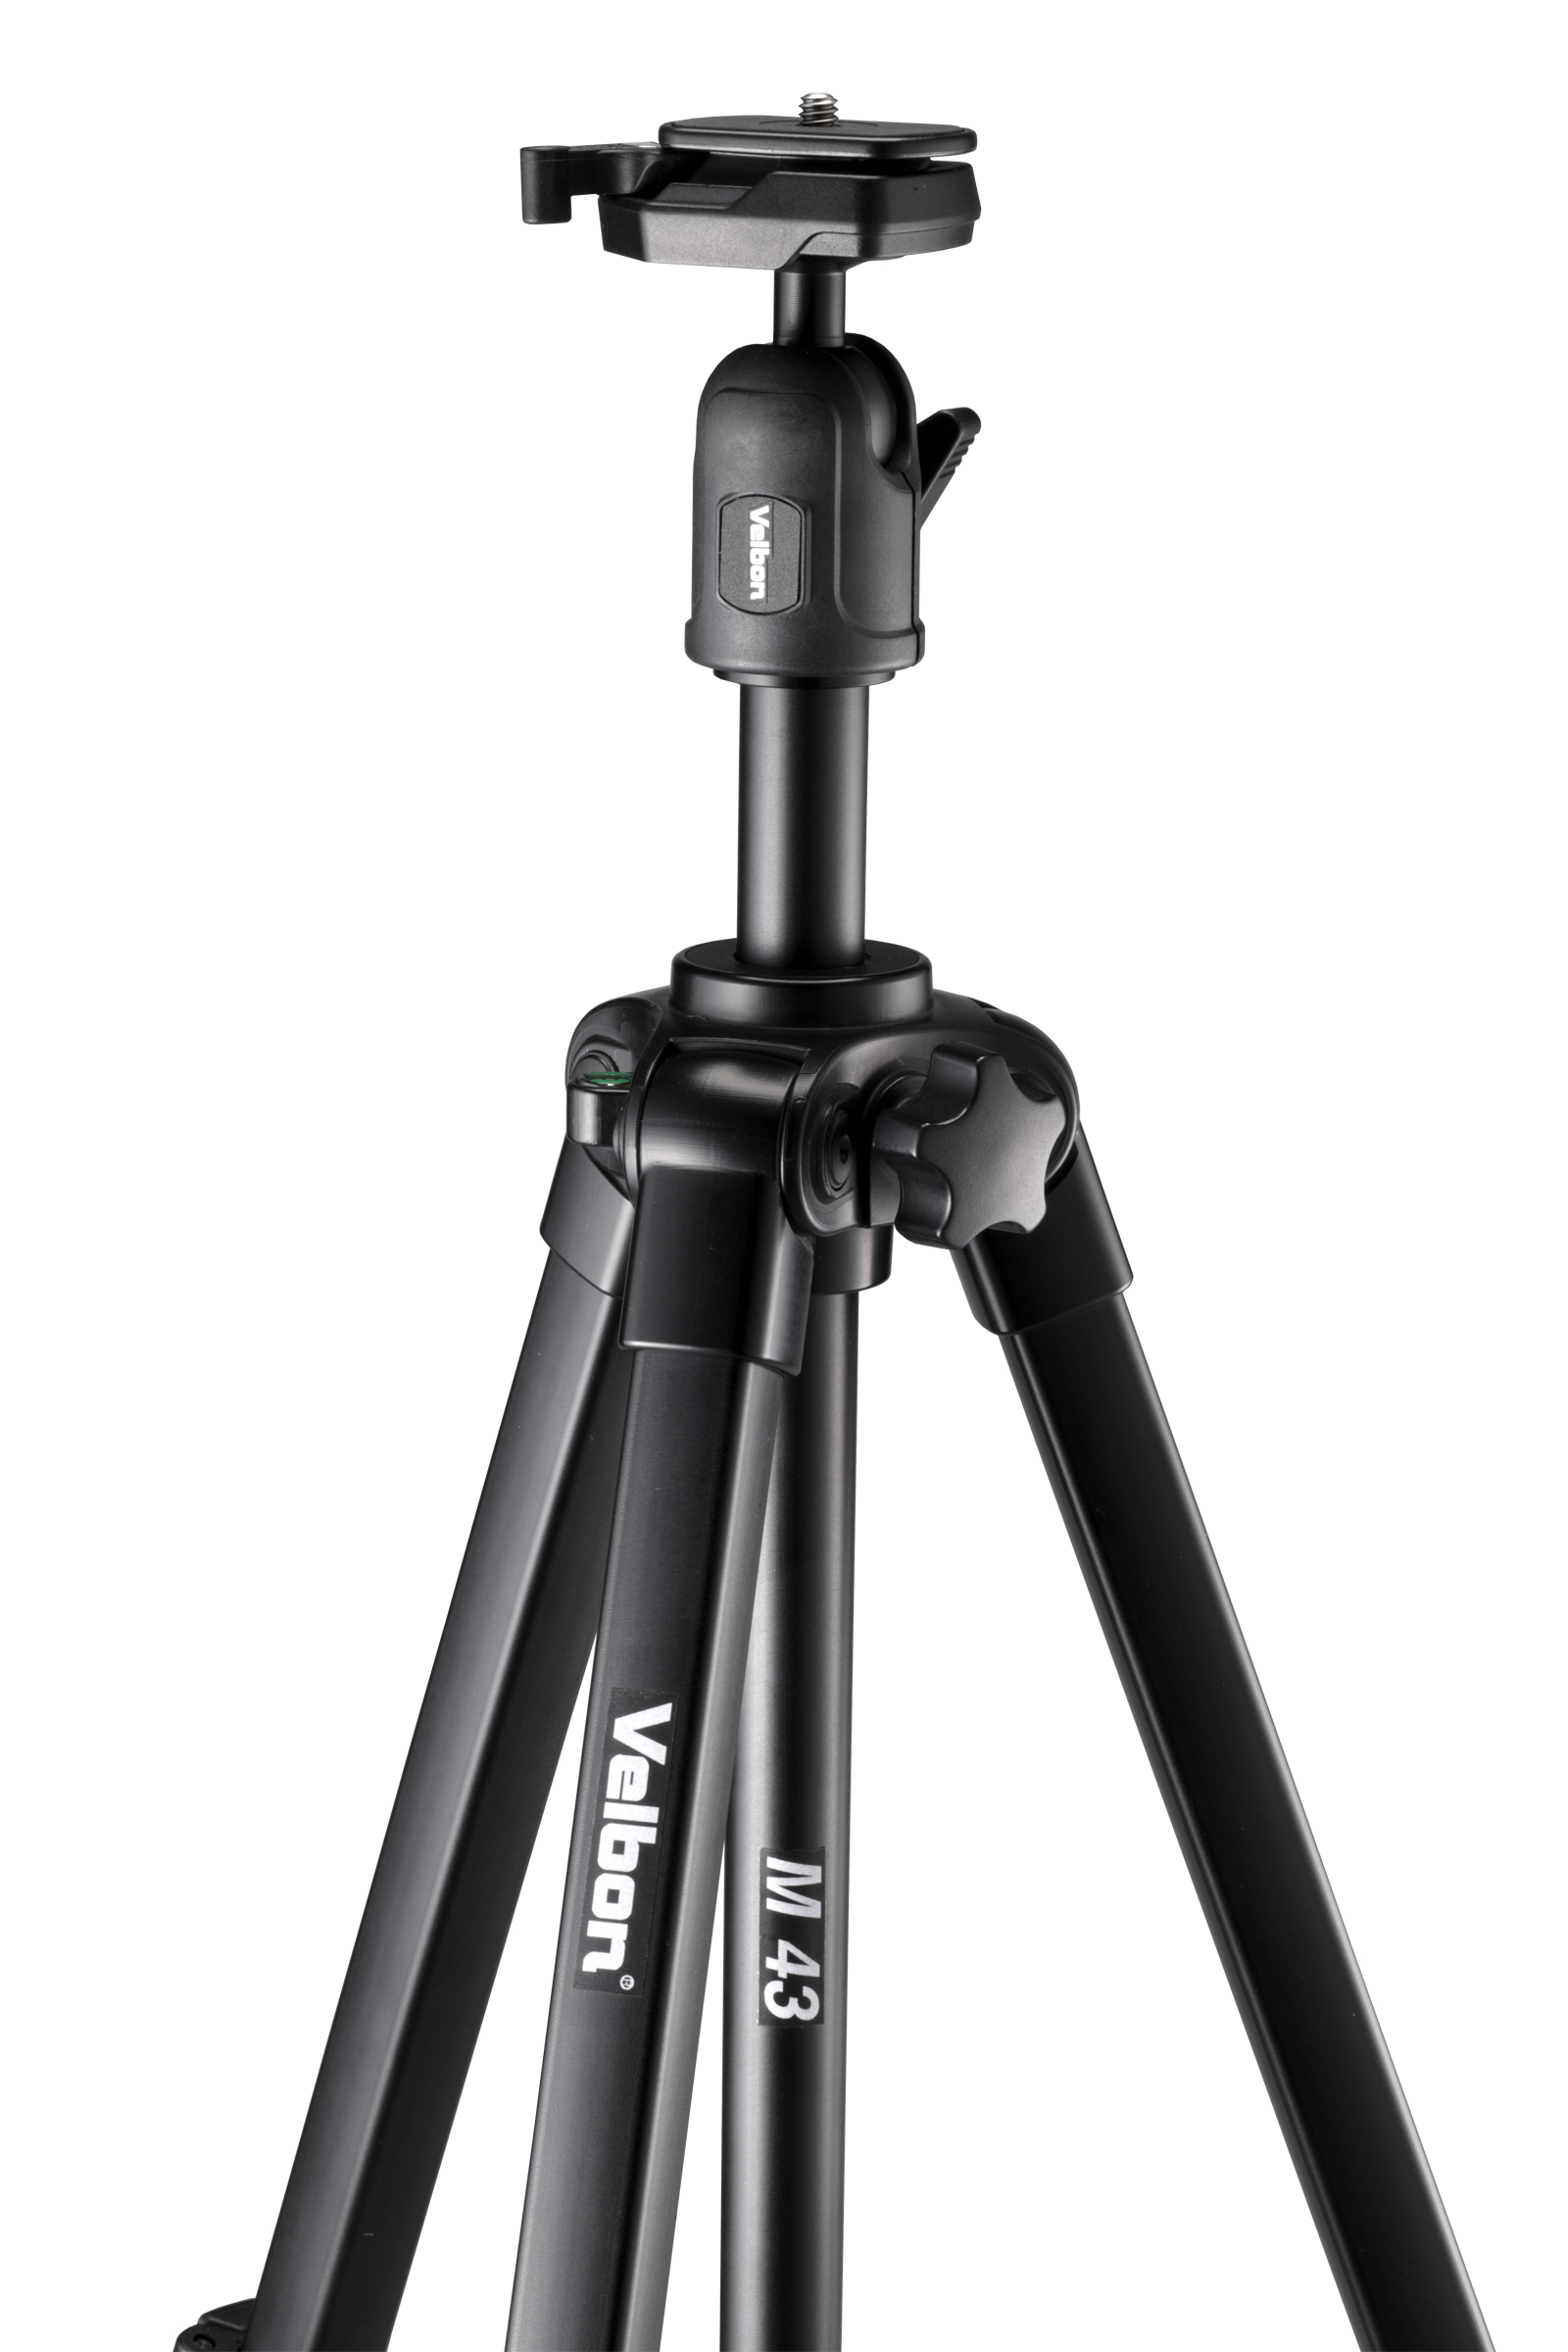 VELBON M43 4 SECOND, FULL SIZE TRIPOD, FLIP LEG LOCKS, LIFT